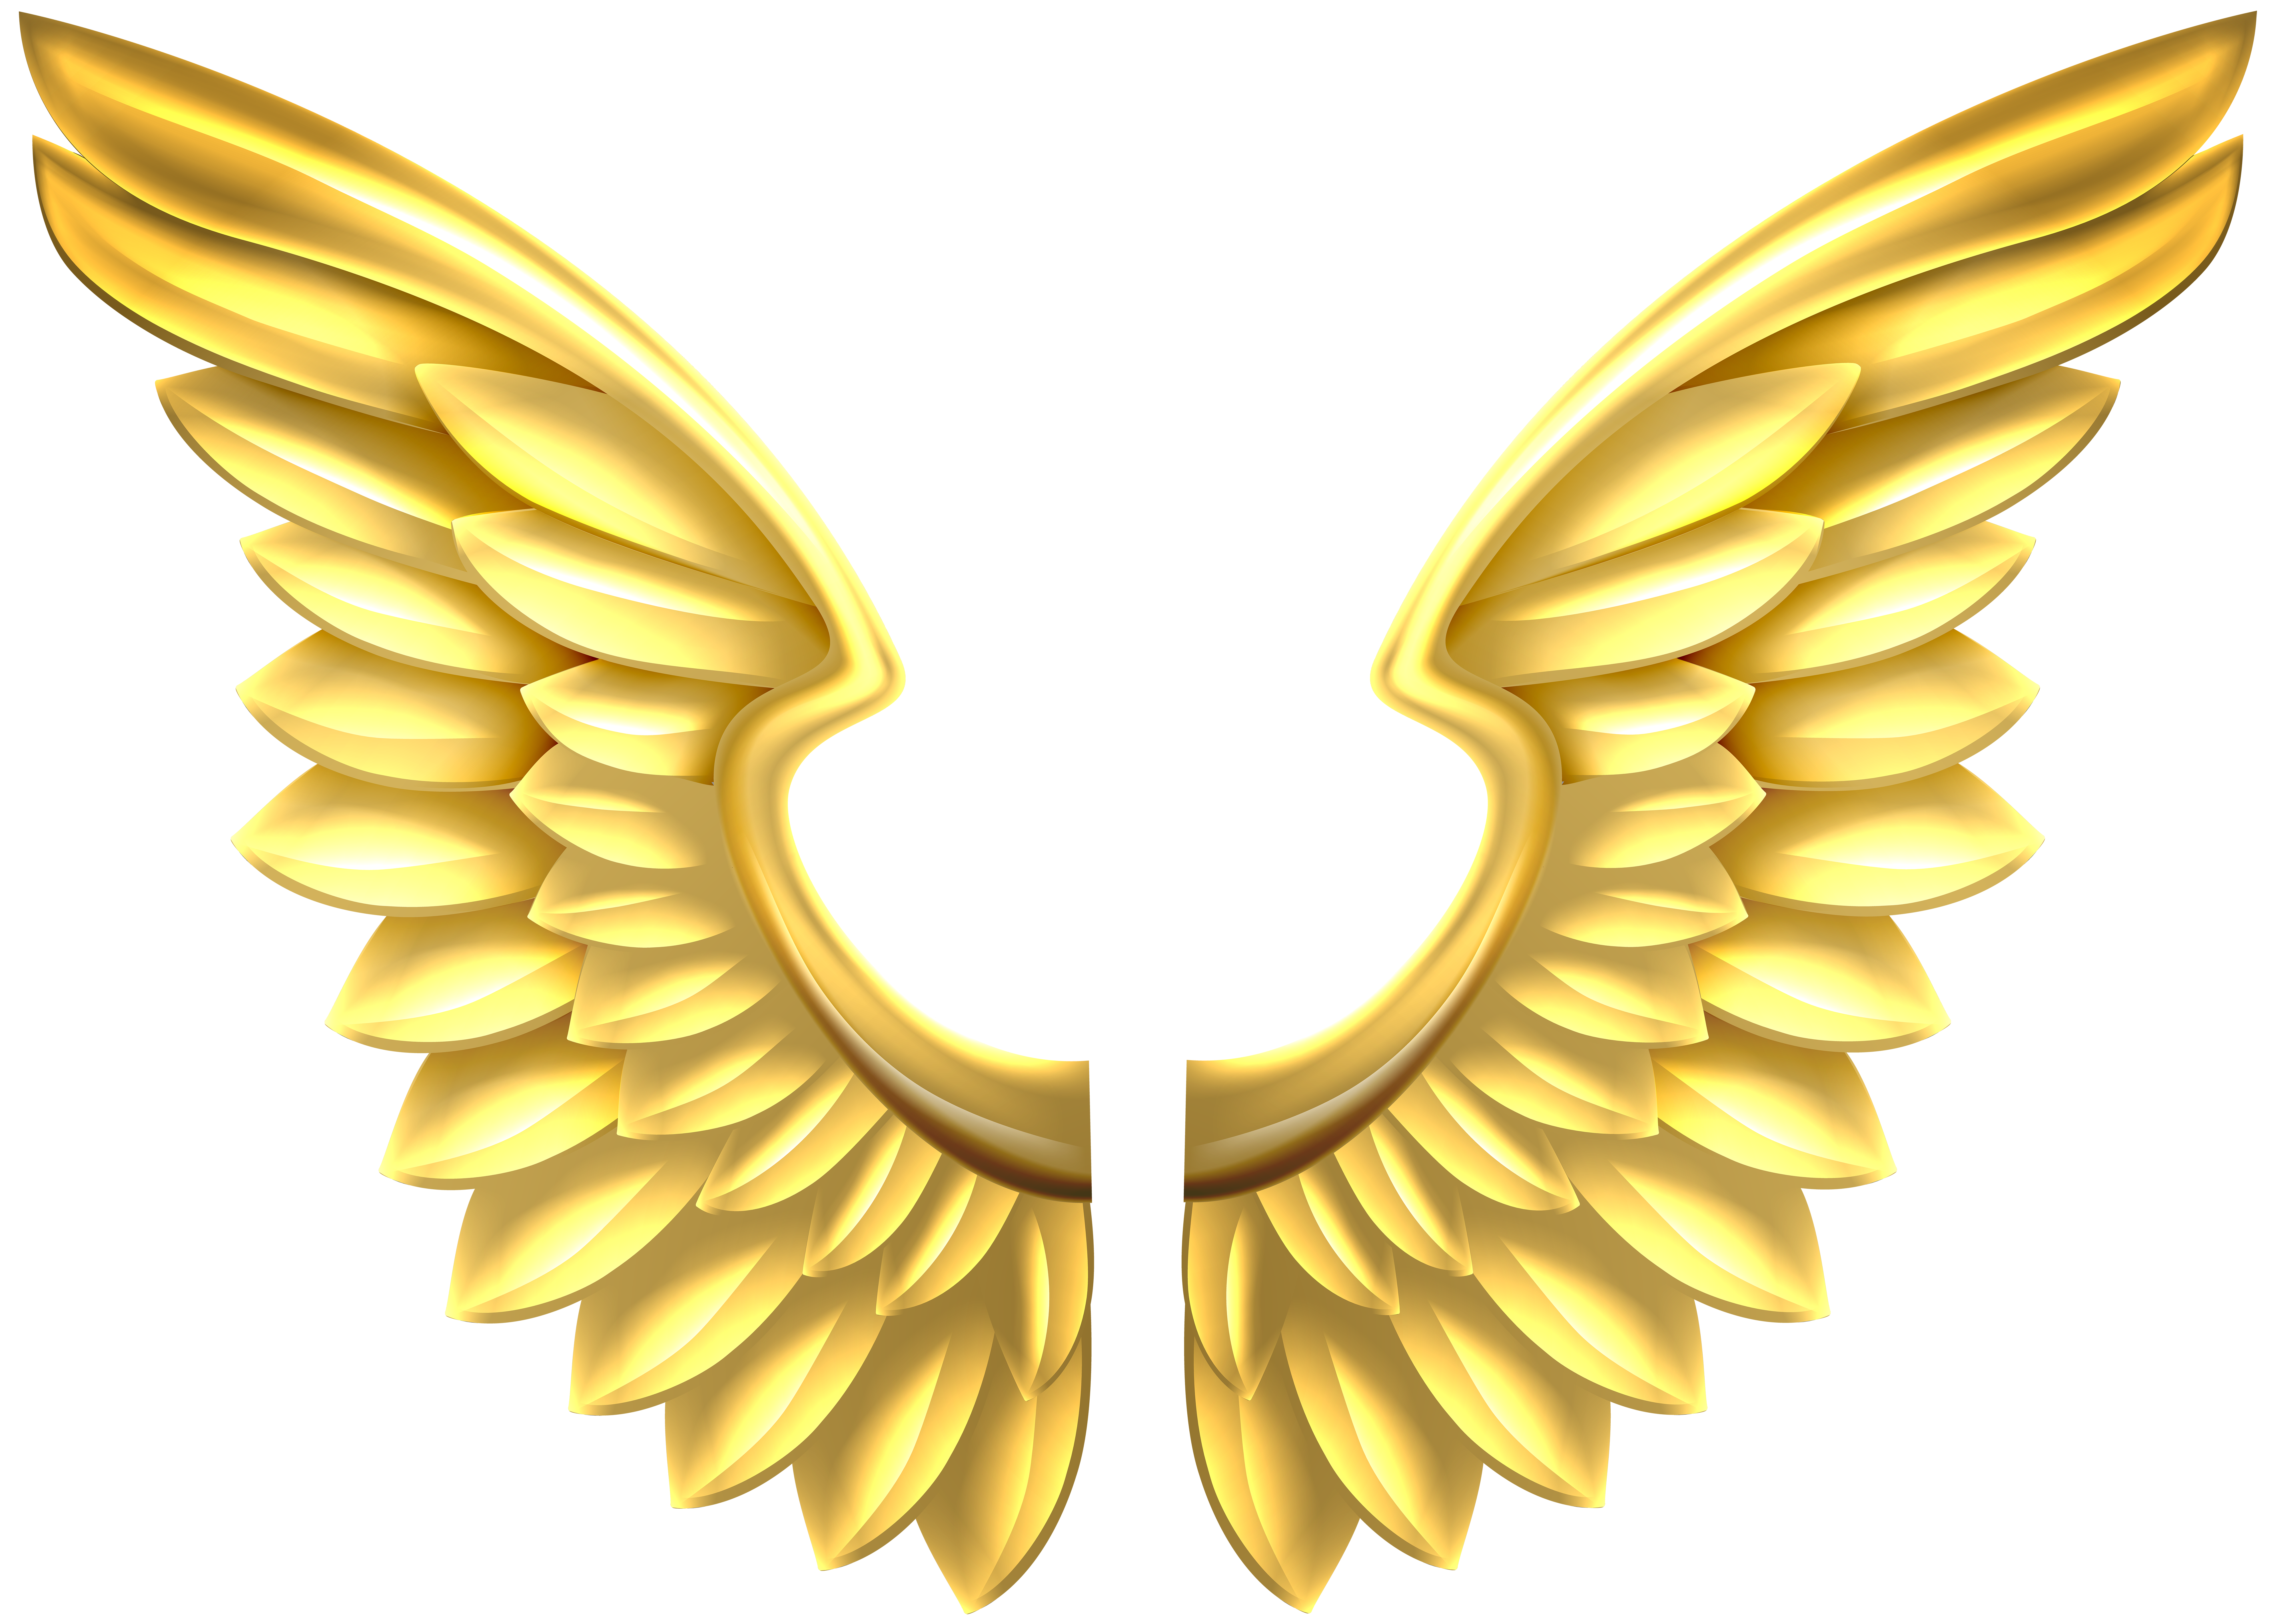 Wings clipart decorative Clip size Wings Gold View